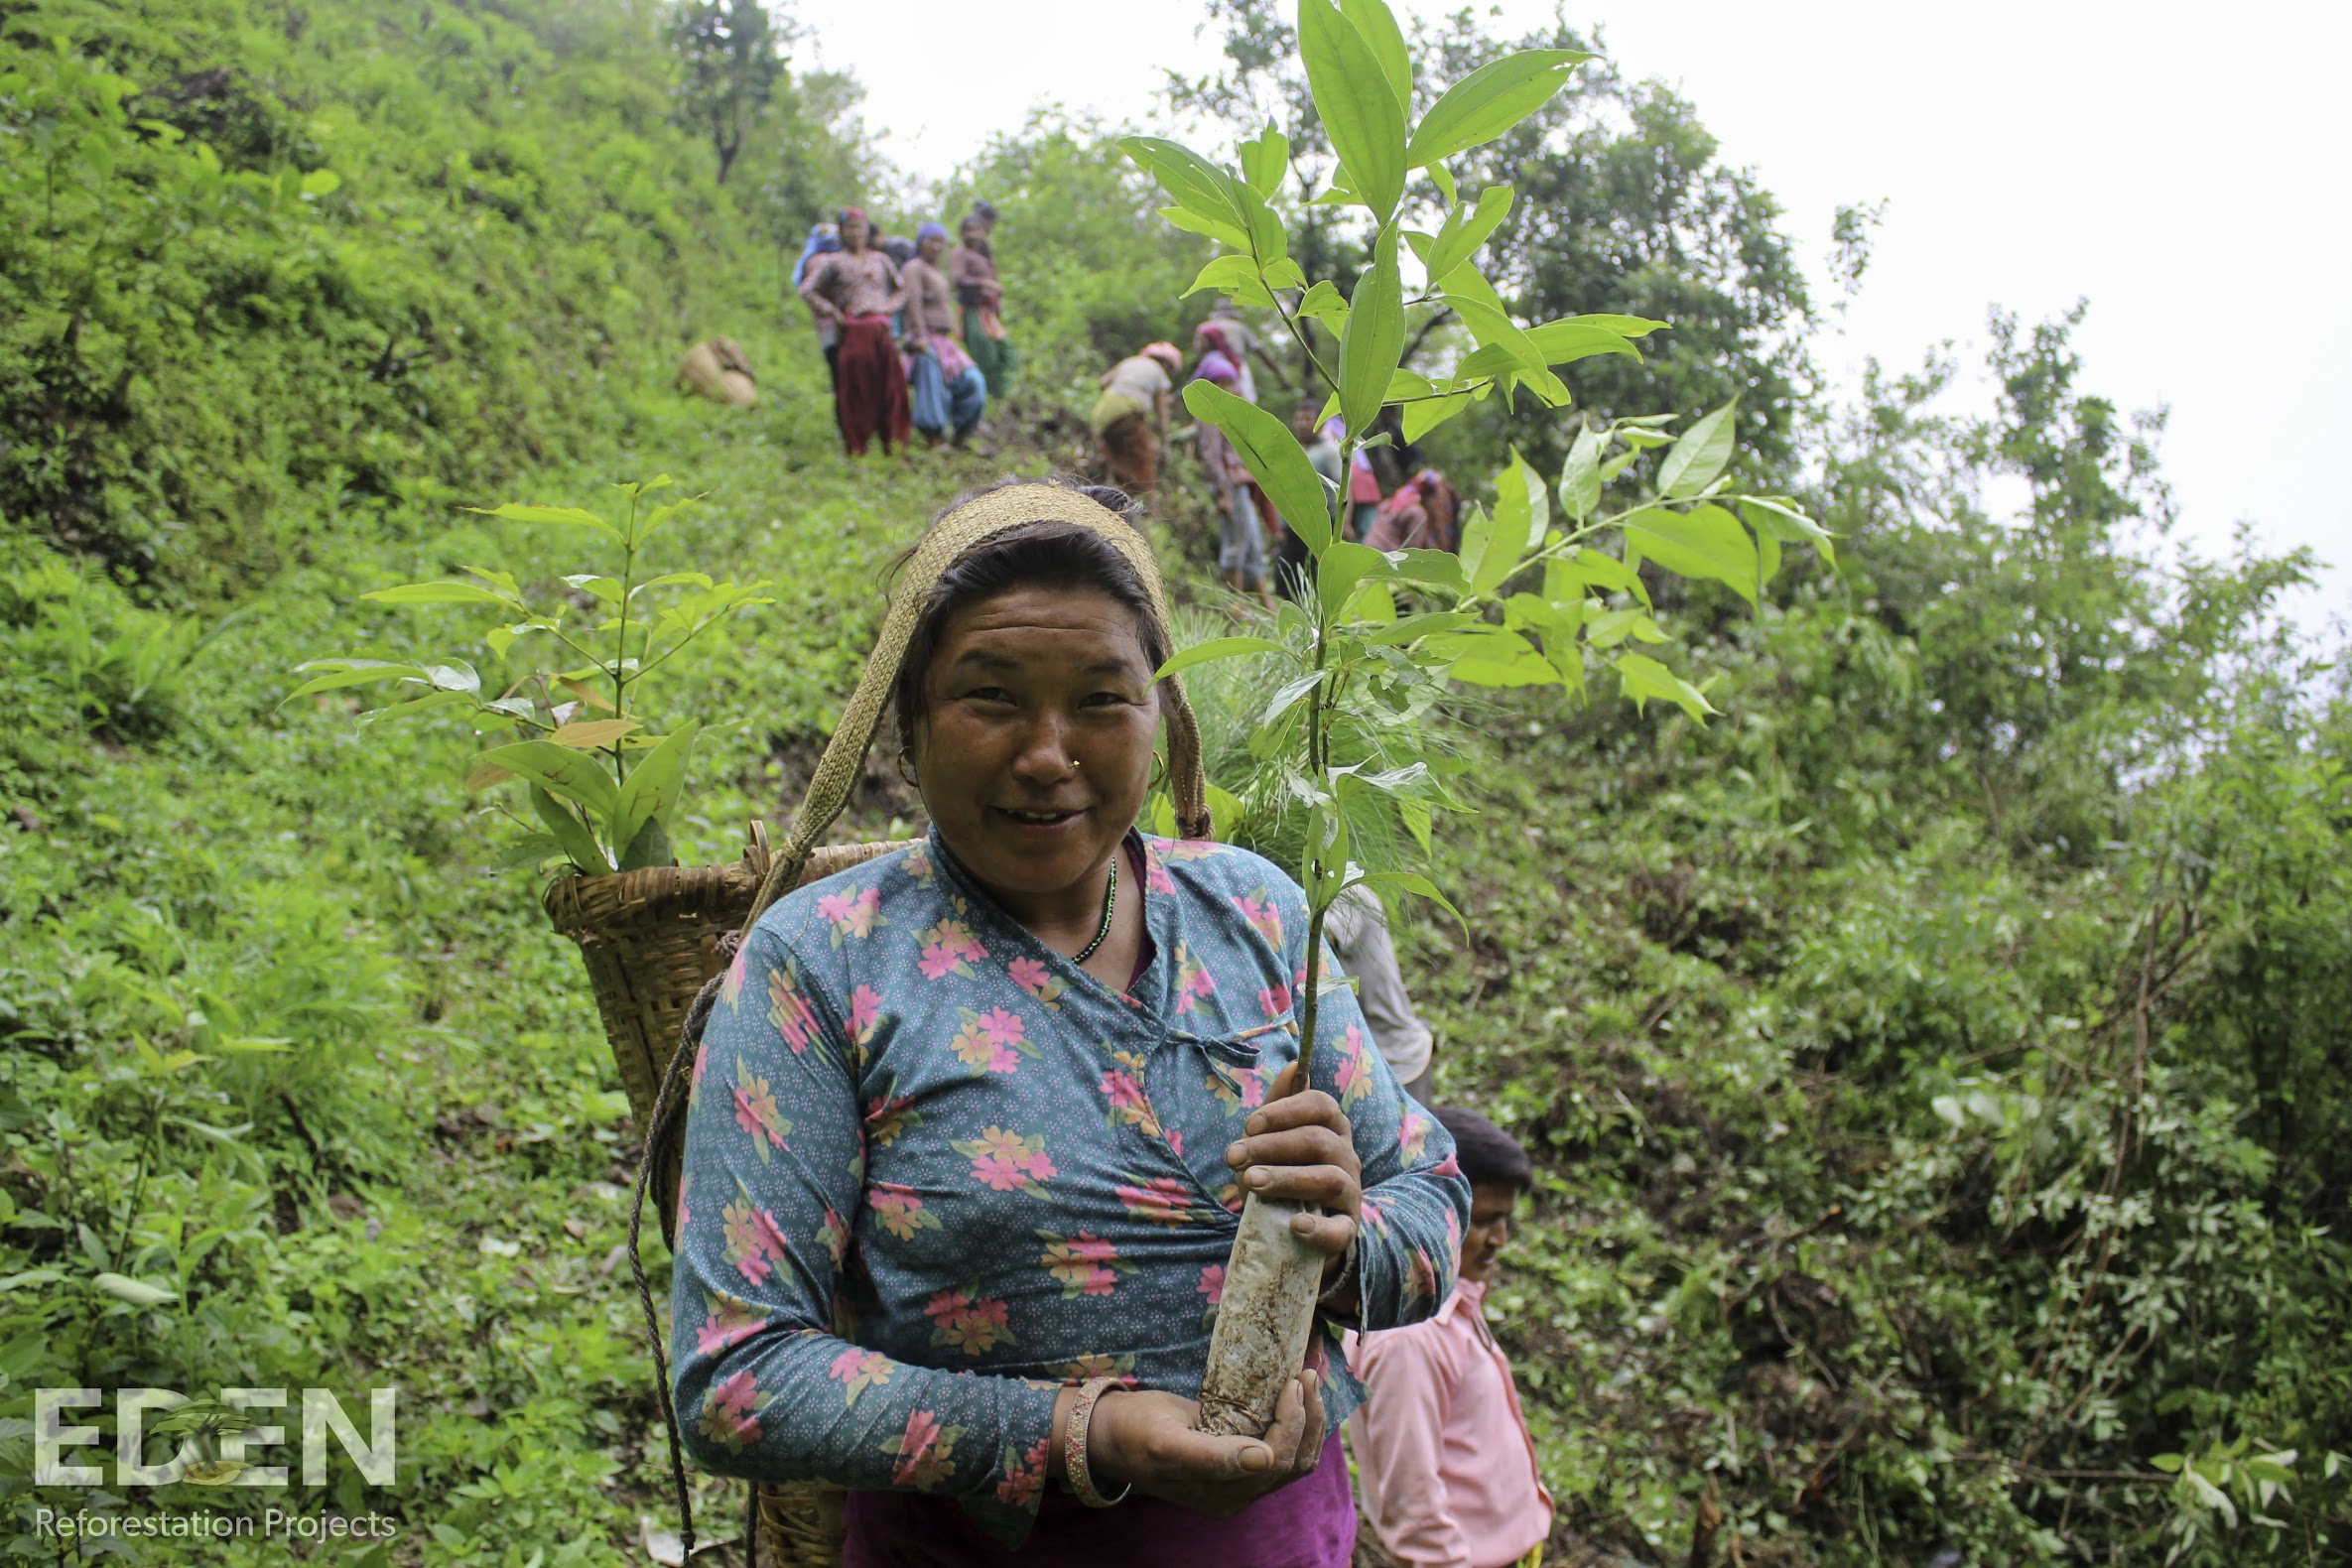 Nepal_2018_Nawalparasi_Nursery director Bhima Sharu leading the plantation activities.jpg